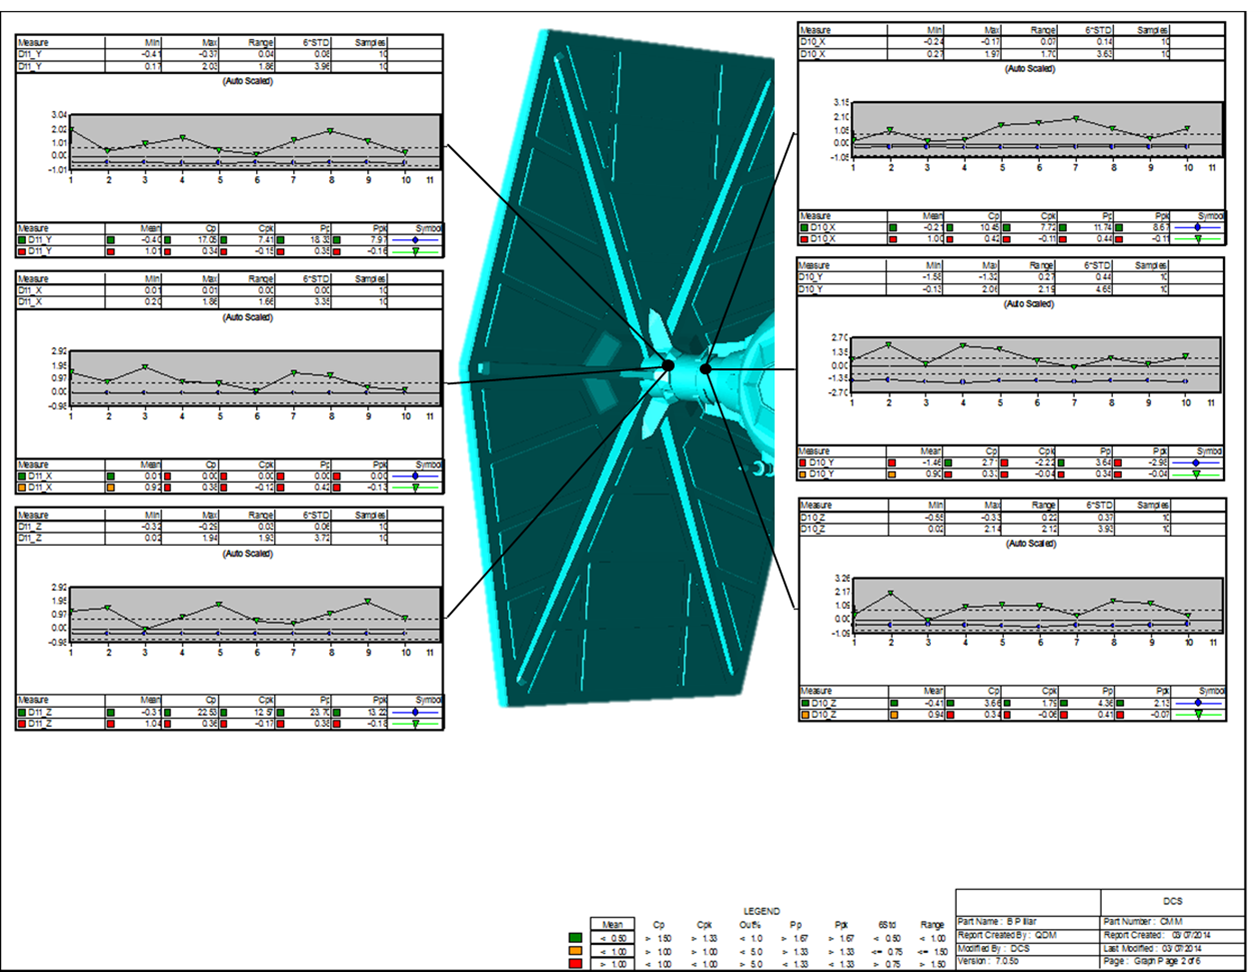 comparator-chart-Tie-Fighter-study.png